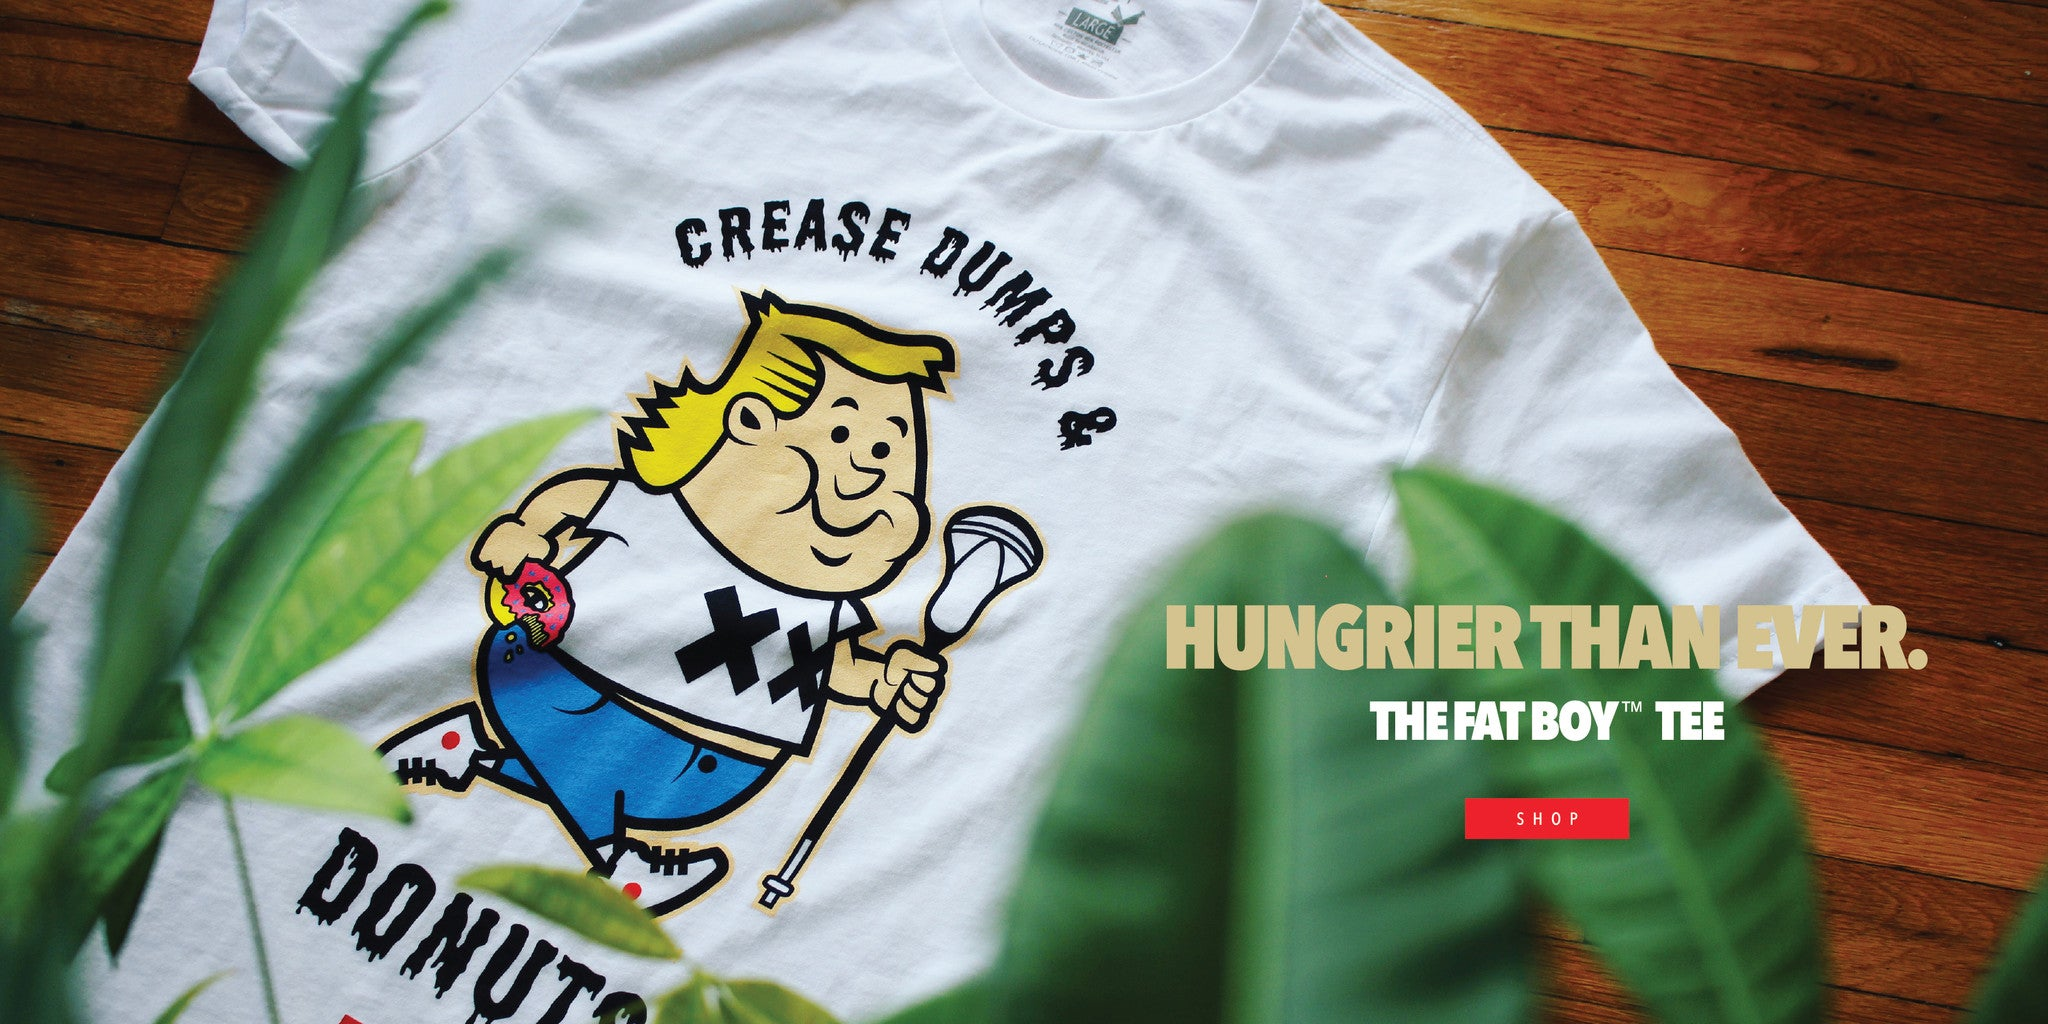 Shop the TILT X ECD Crabby Fat Boy Tee